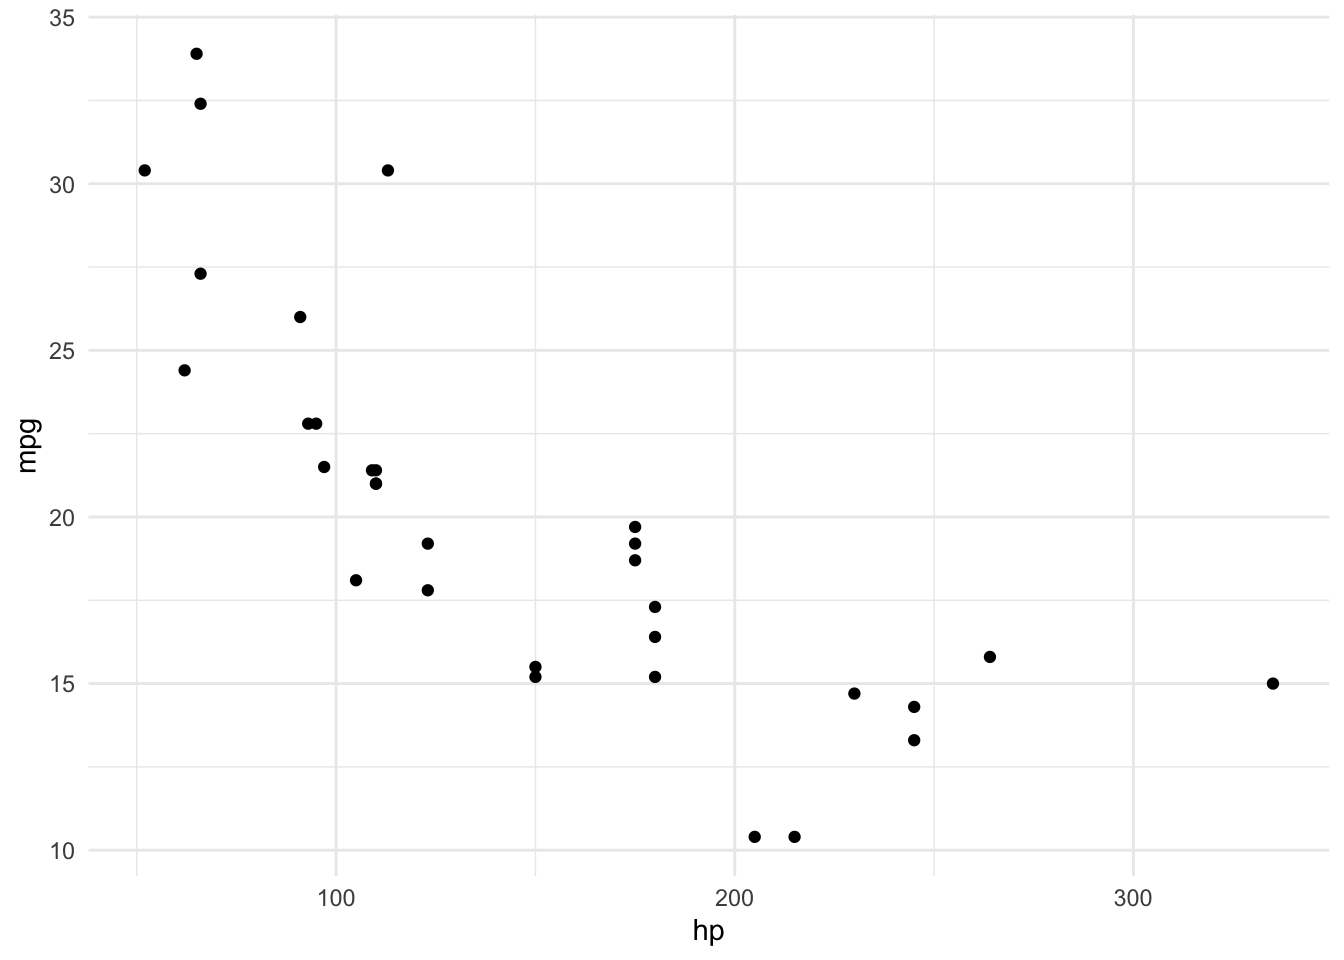 A scatter plot with horsepower (range 0 to 350) on the x axis and miles per gallon (range 10 to 35) of cars, showing a nonlinear, negative association. The key insight here is that adding super_fancy_layer(), which just outputs a list containing theme_minimal(), applies that theme to the plot via the plus operator; rather than the default gray panel background, the plot now has a white one.